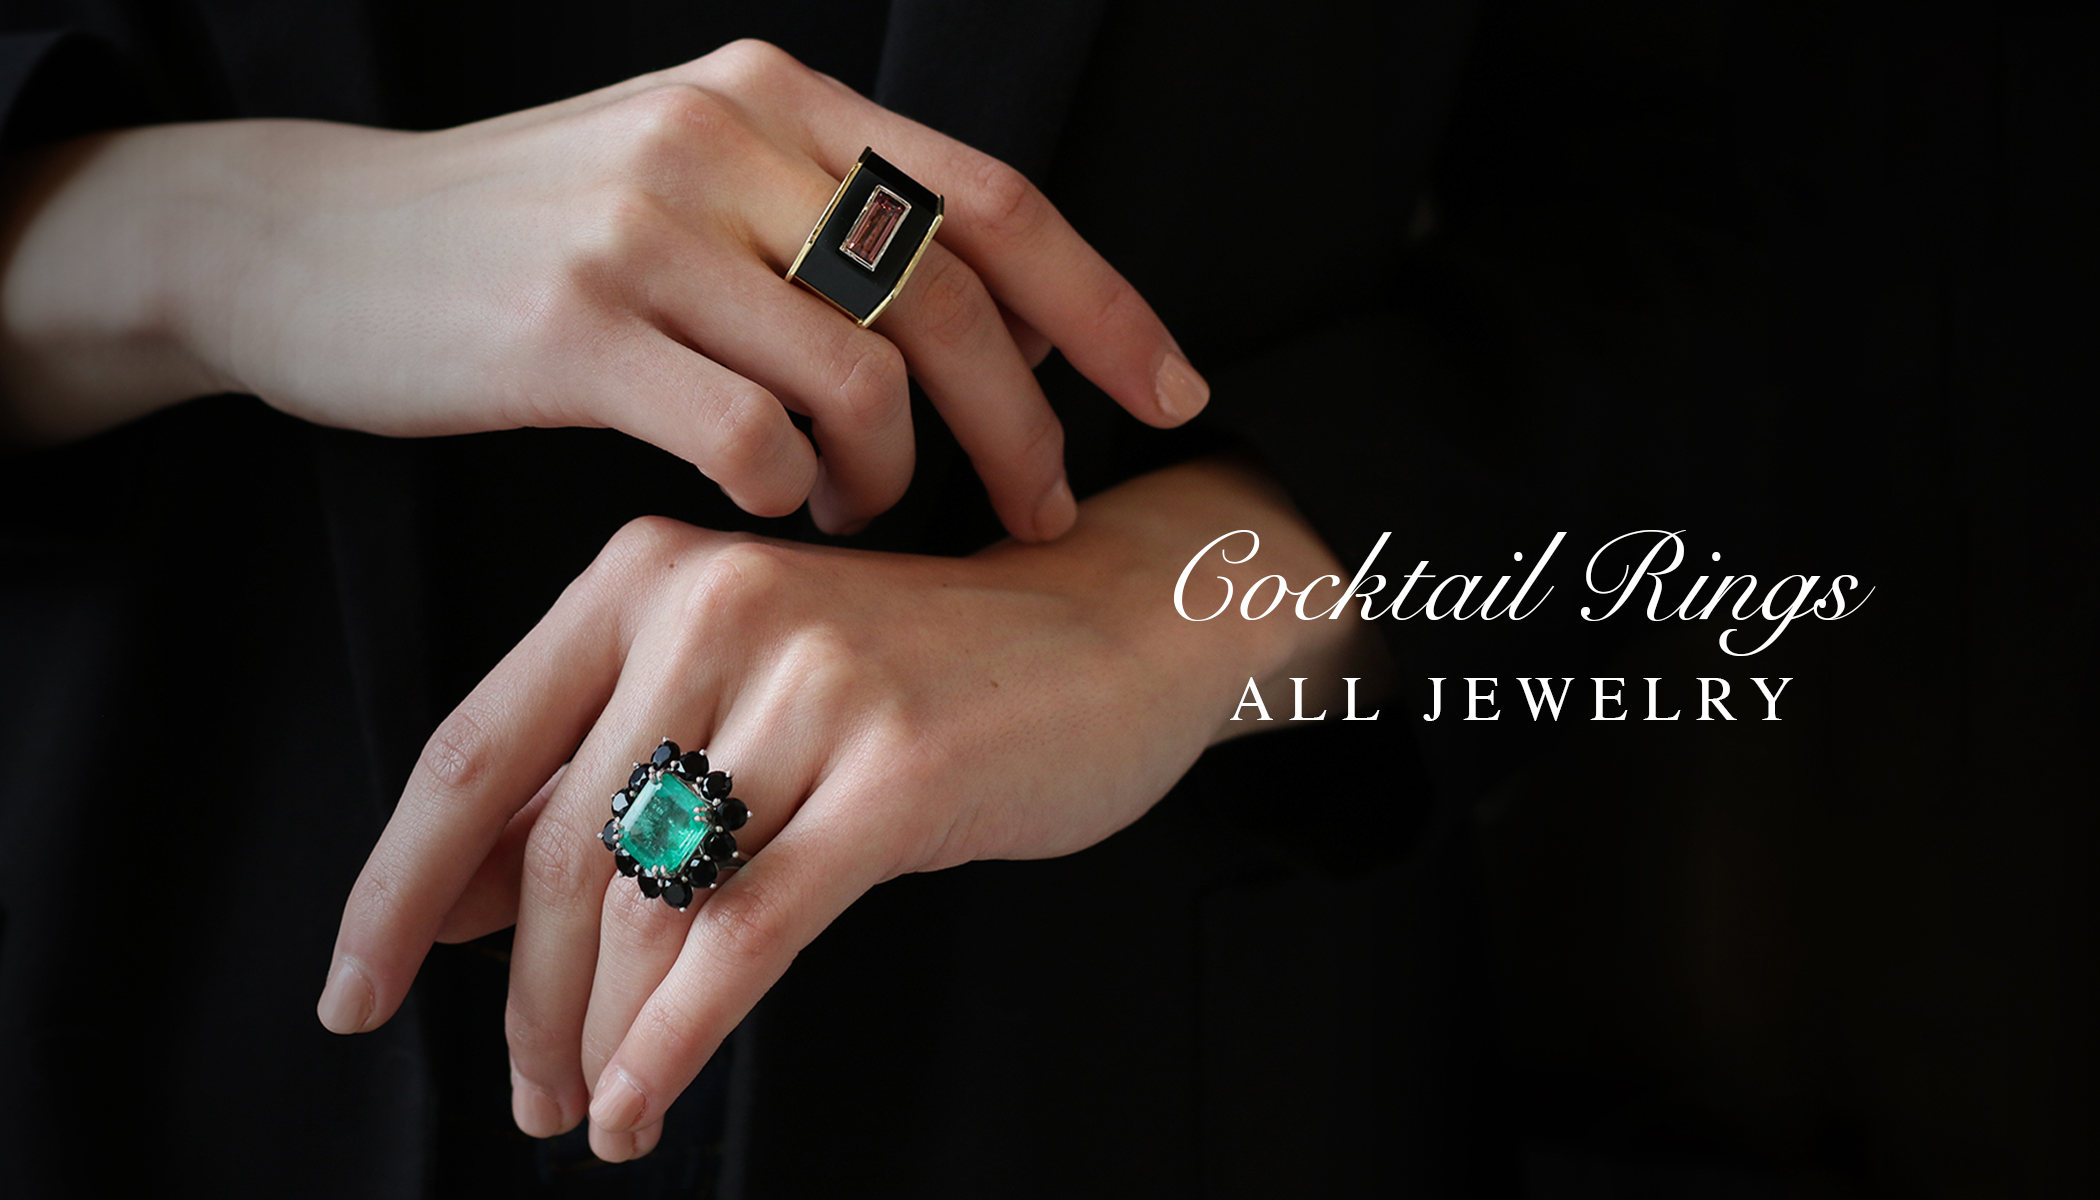 22c967ab5987f Cocktail Rings - Right Hand Rings - Vintage Rings - Filigree Jewelers